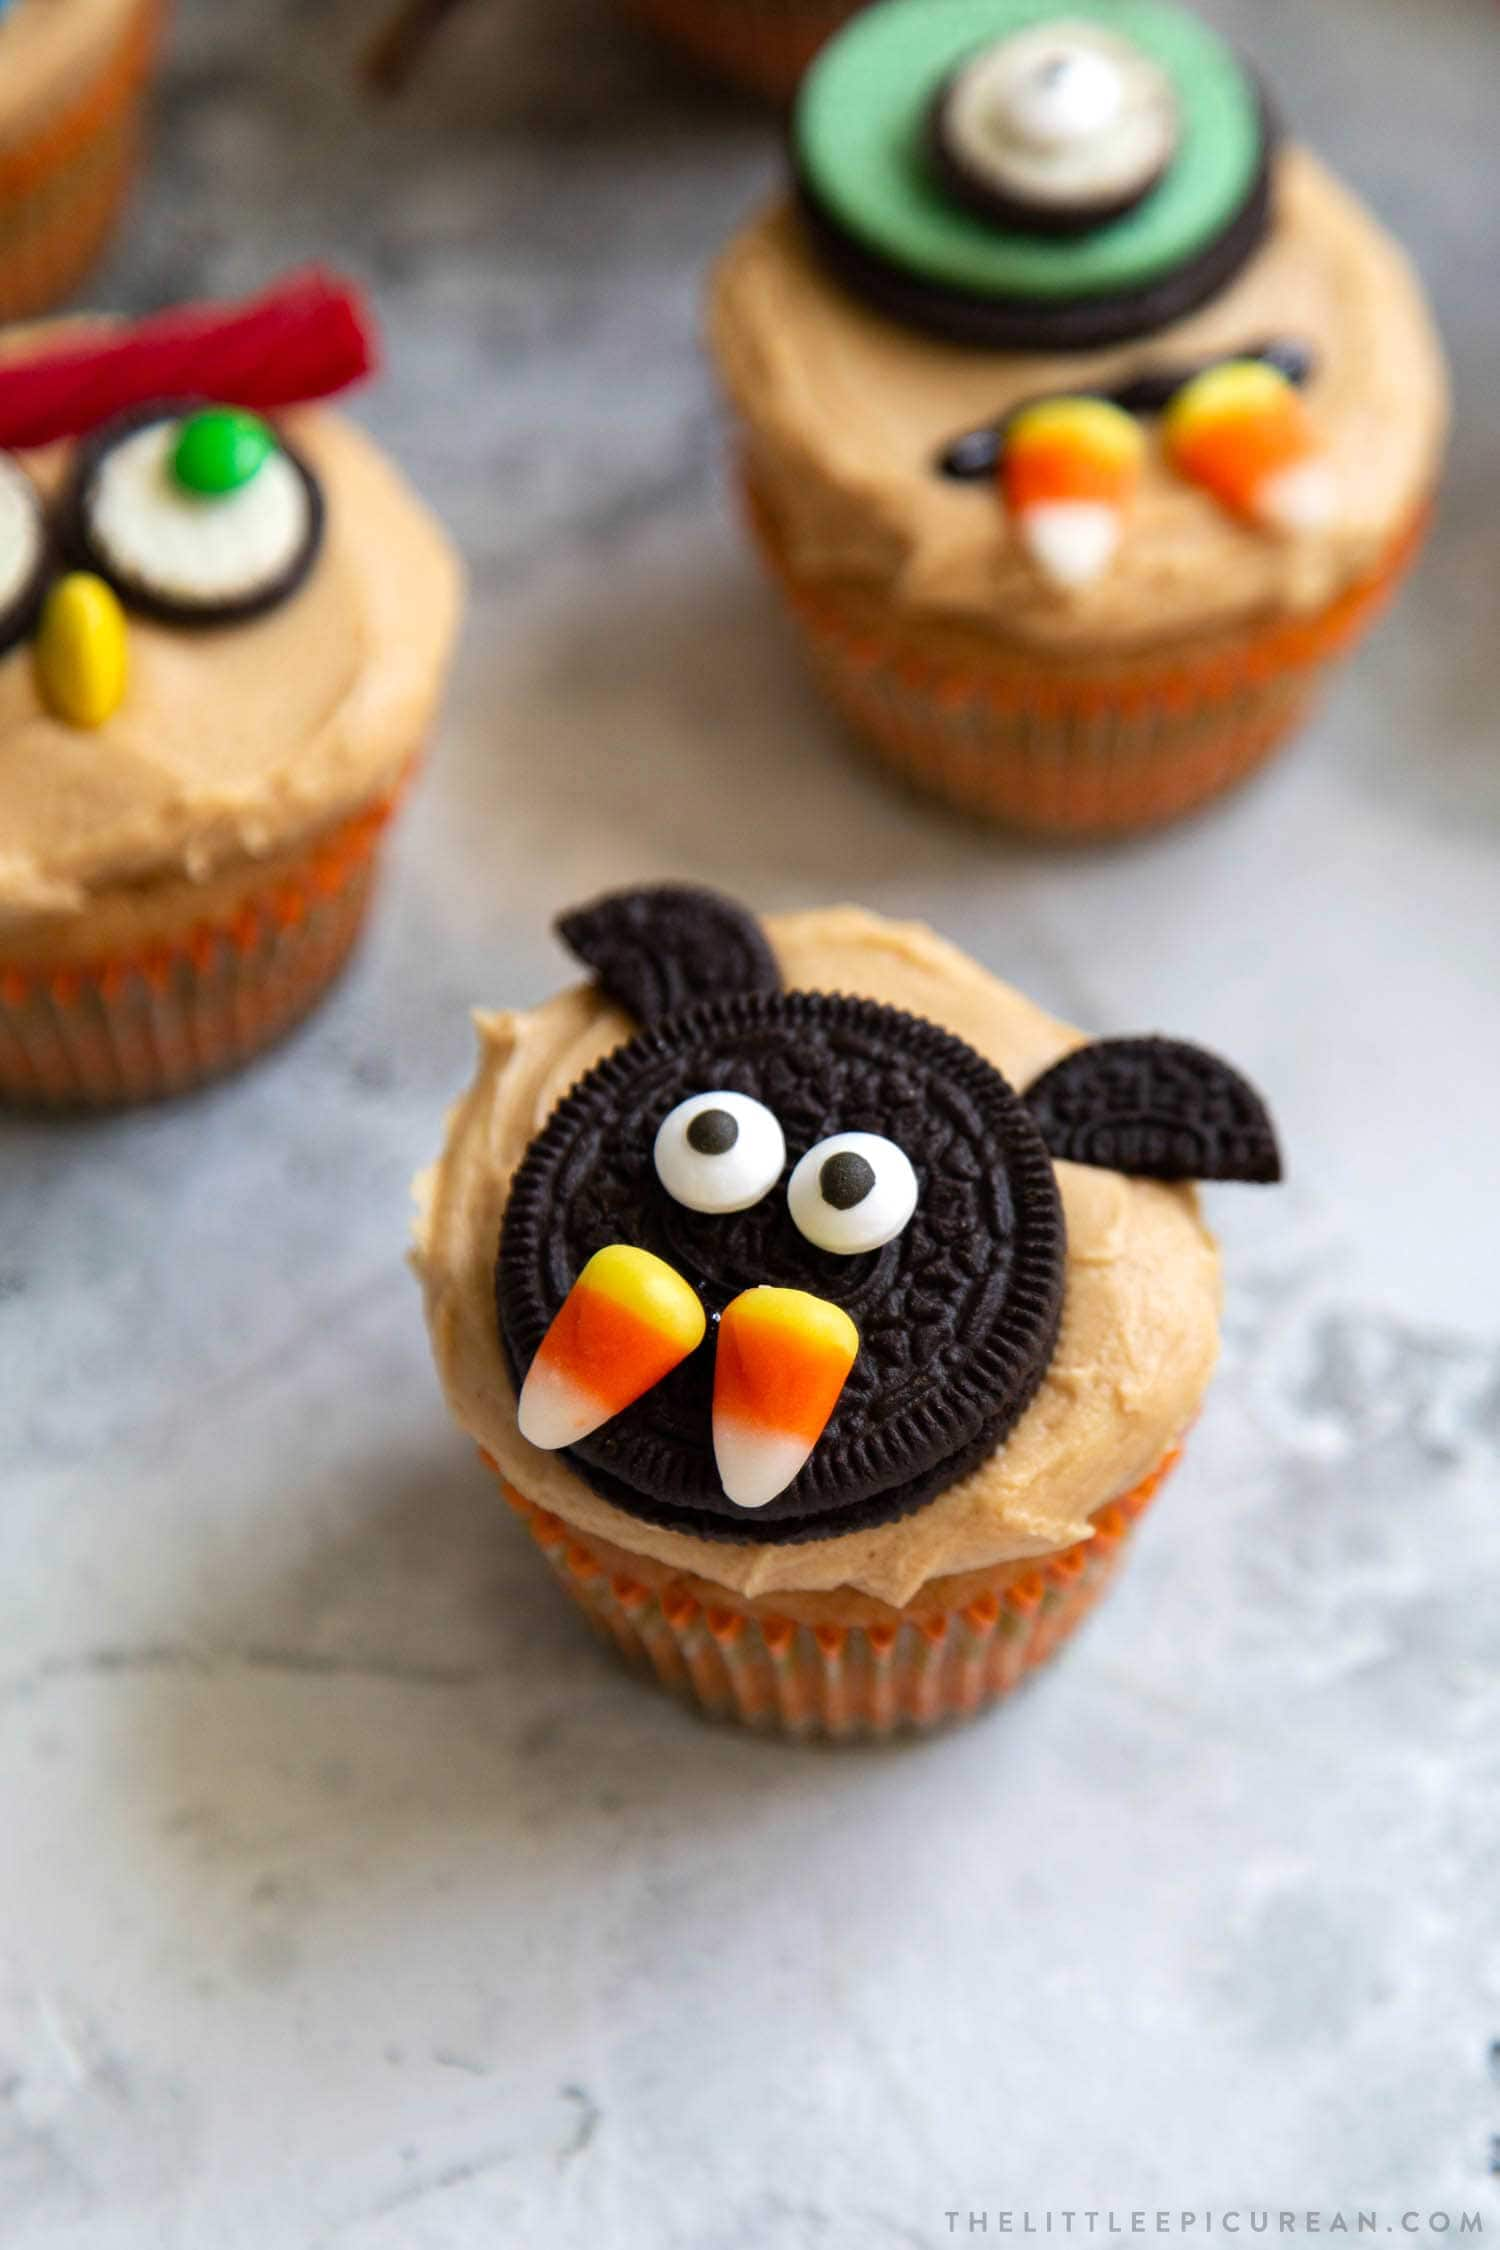 Candy Bat Halloween Cupcakes. Easy to decorate Halloween cupcakes using store-bought candies. This post contains 10 decor ideas!